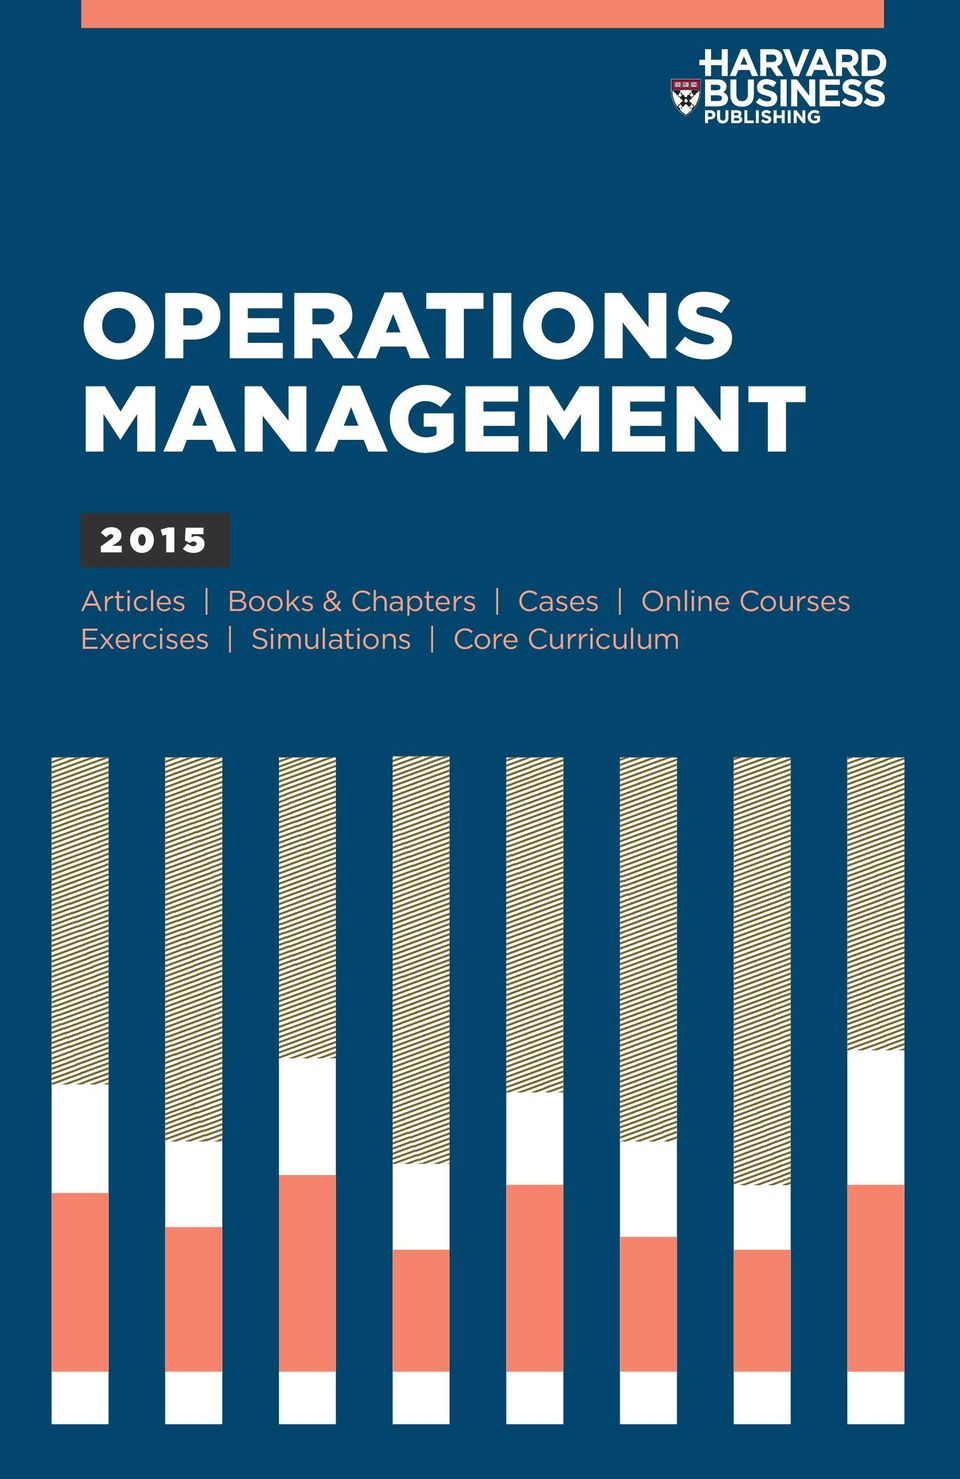 operations management case studies harvard